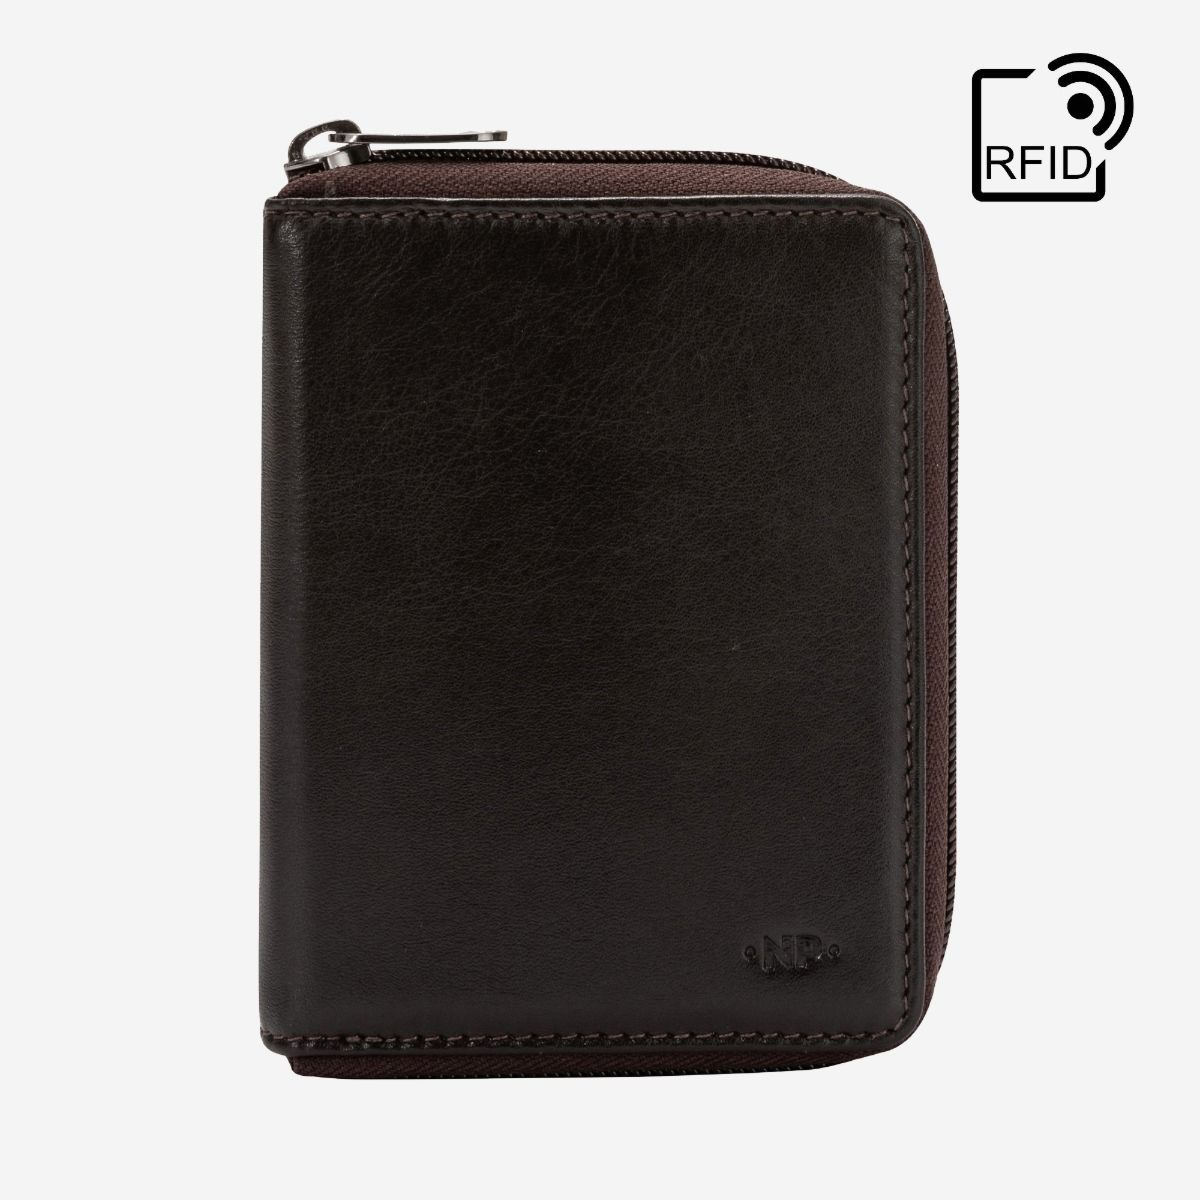 NUVOLA PELLE RFID Mens Leather Wallet with Zip - Dark Brown